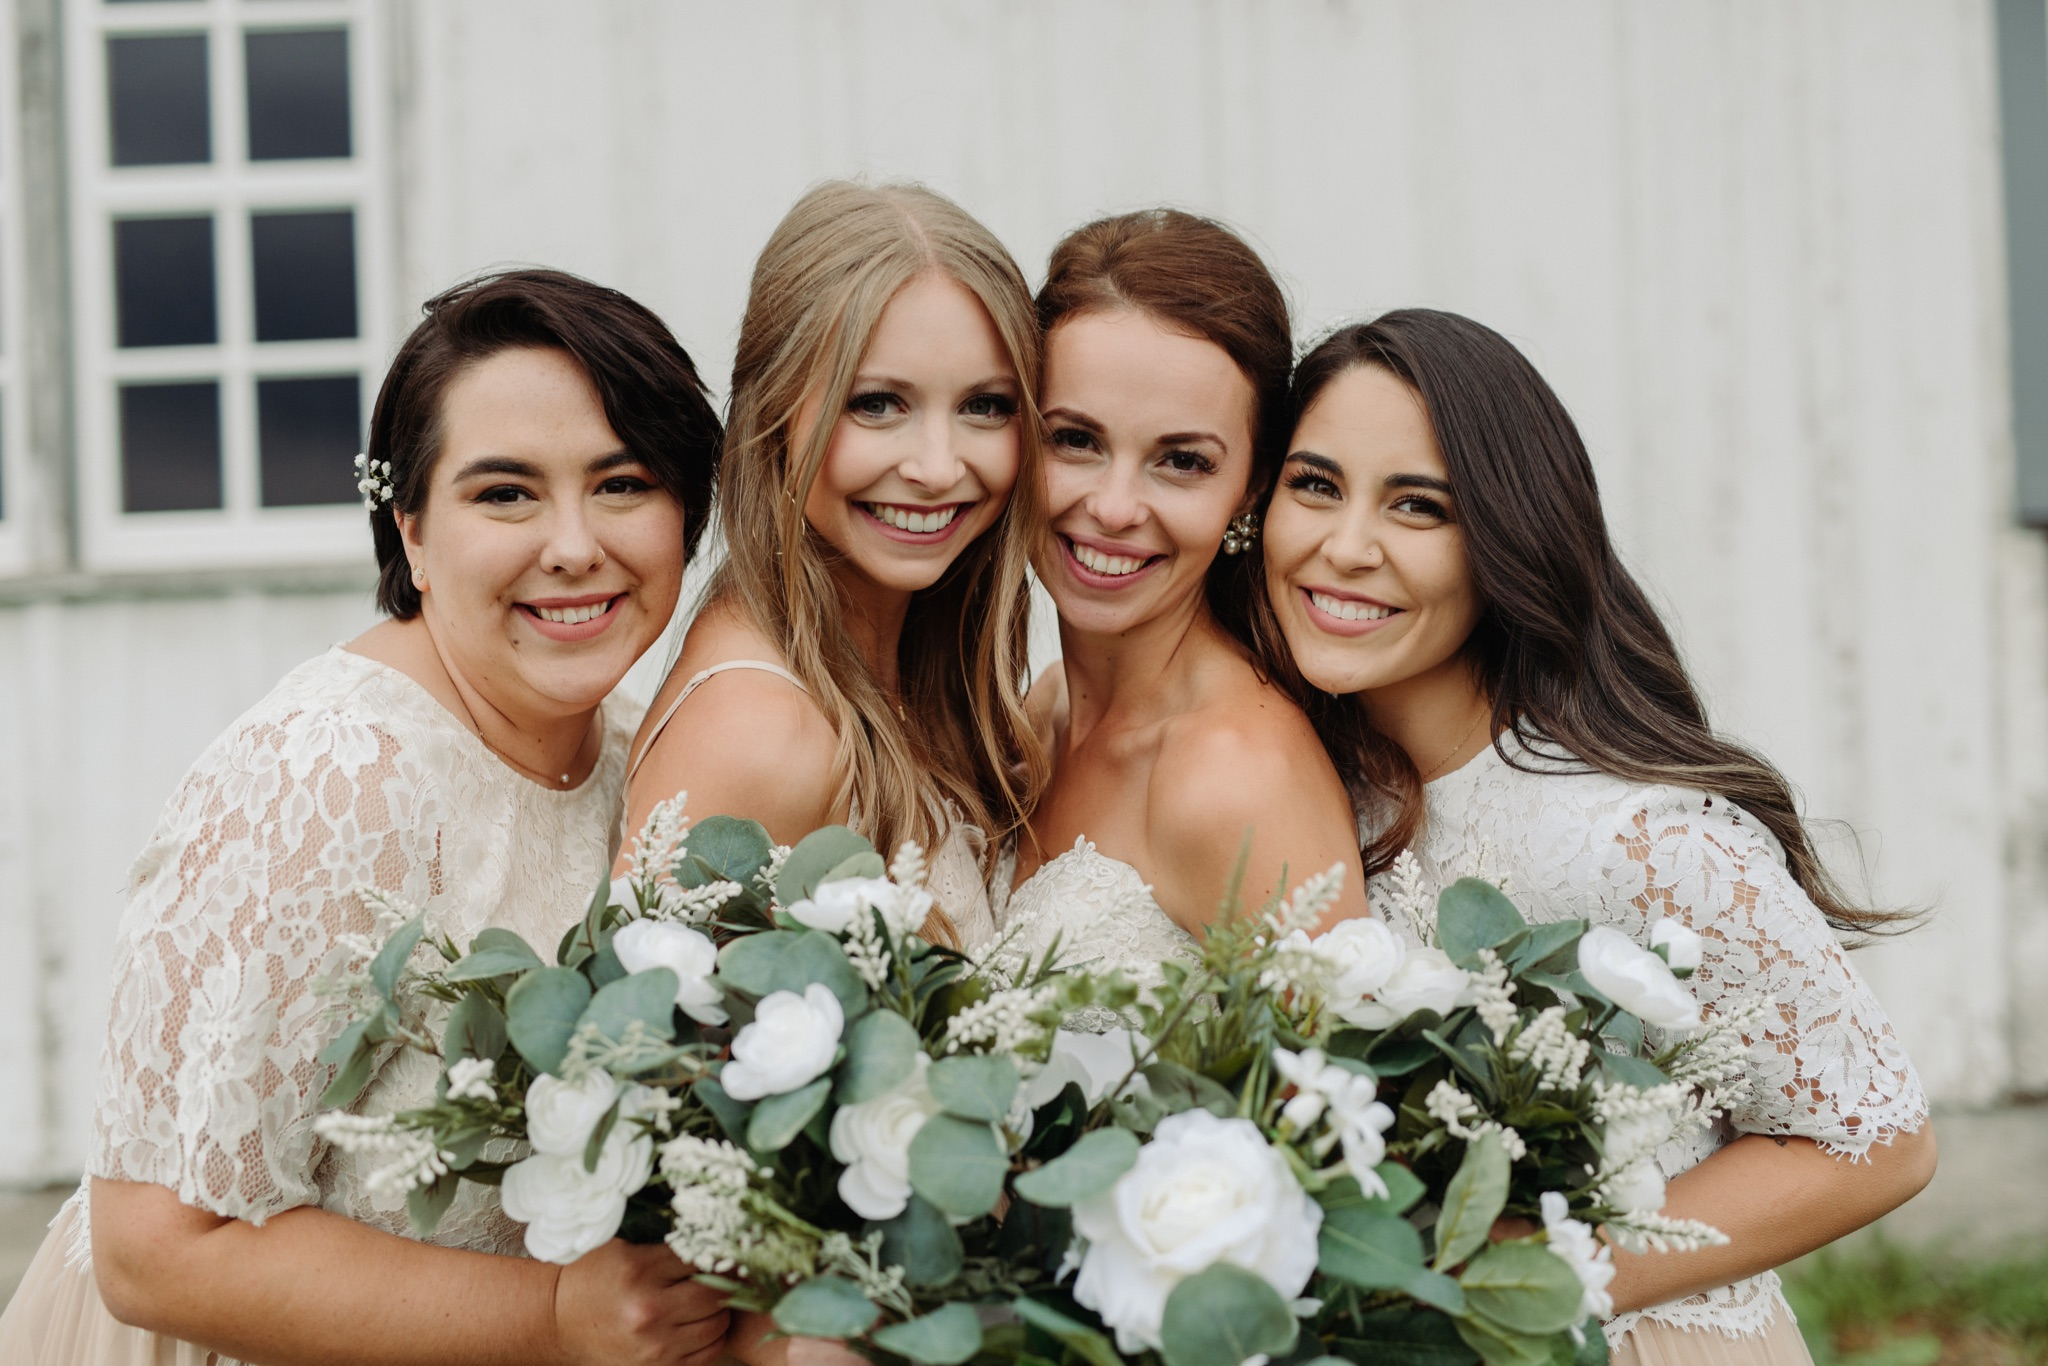 bride standing with bridesmaids and holding flowers